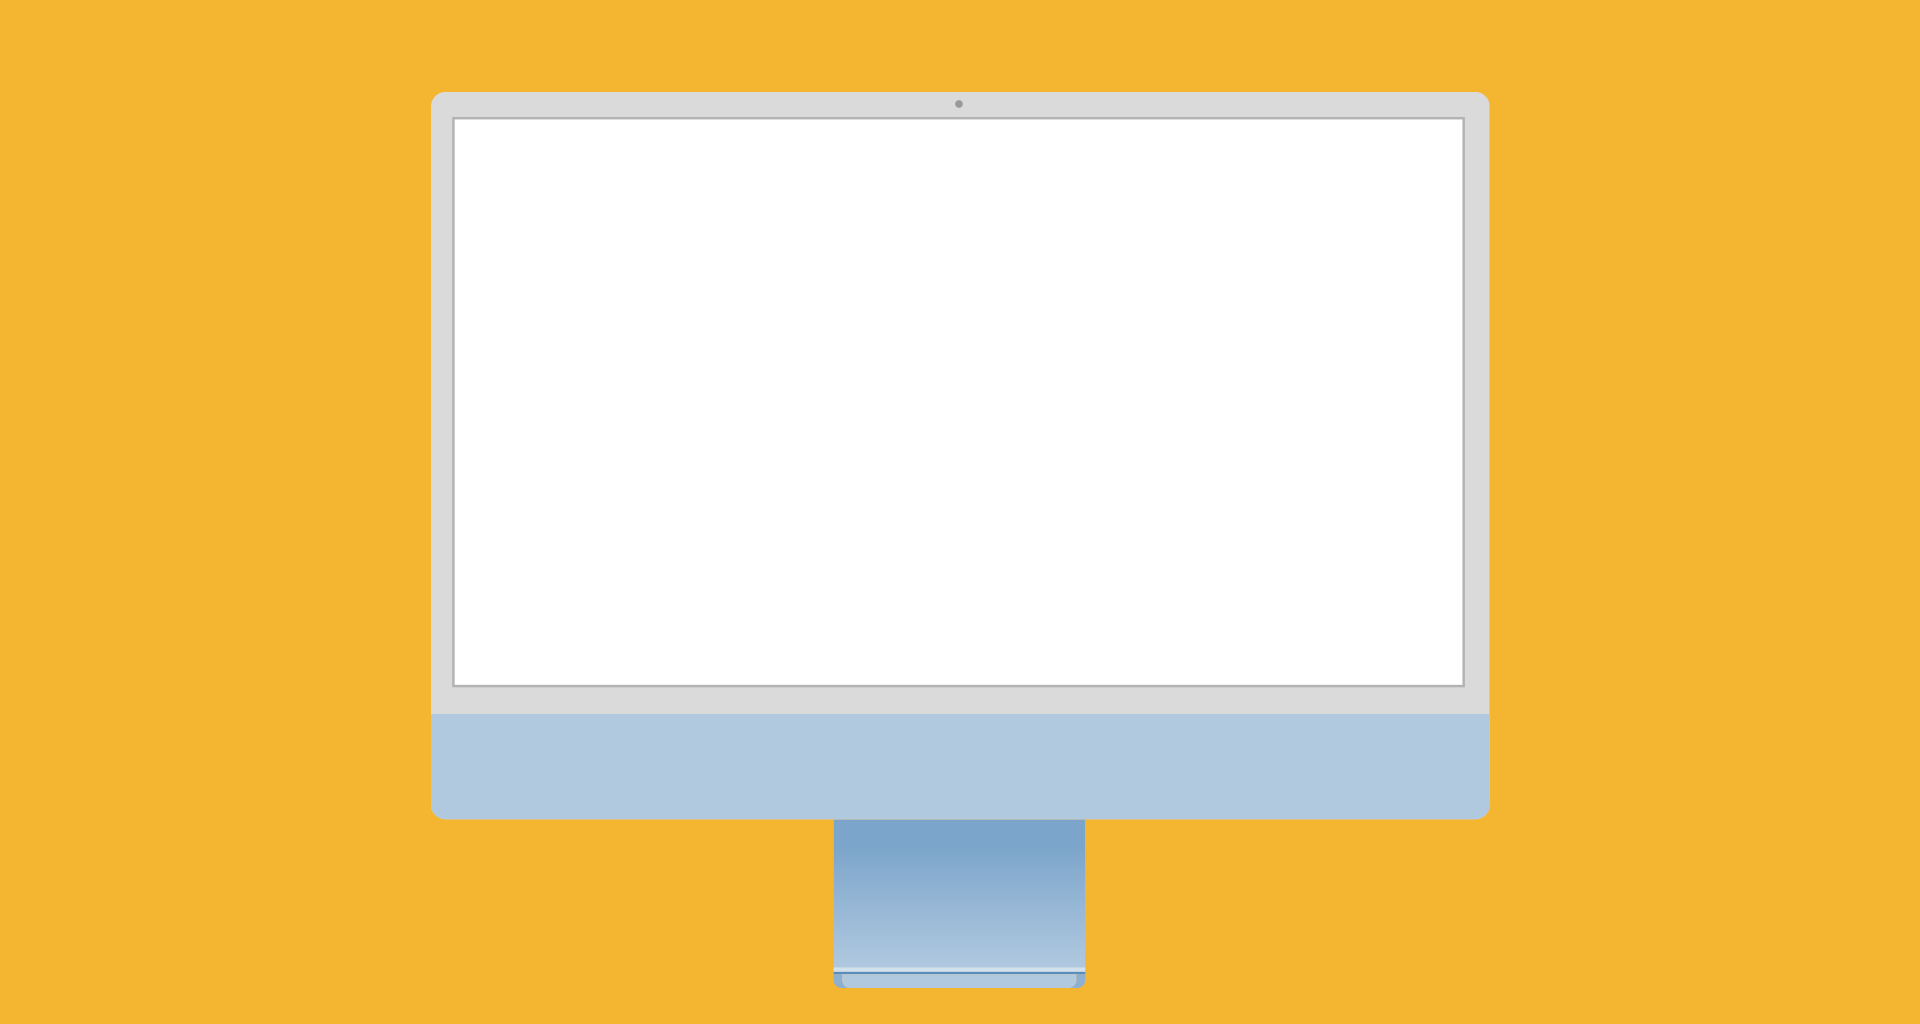 How to Design an iMac Computer in PowerPoint